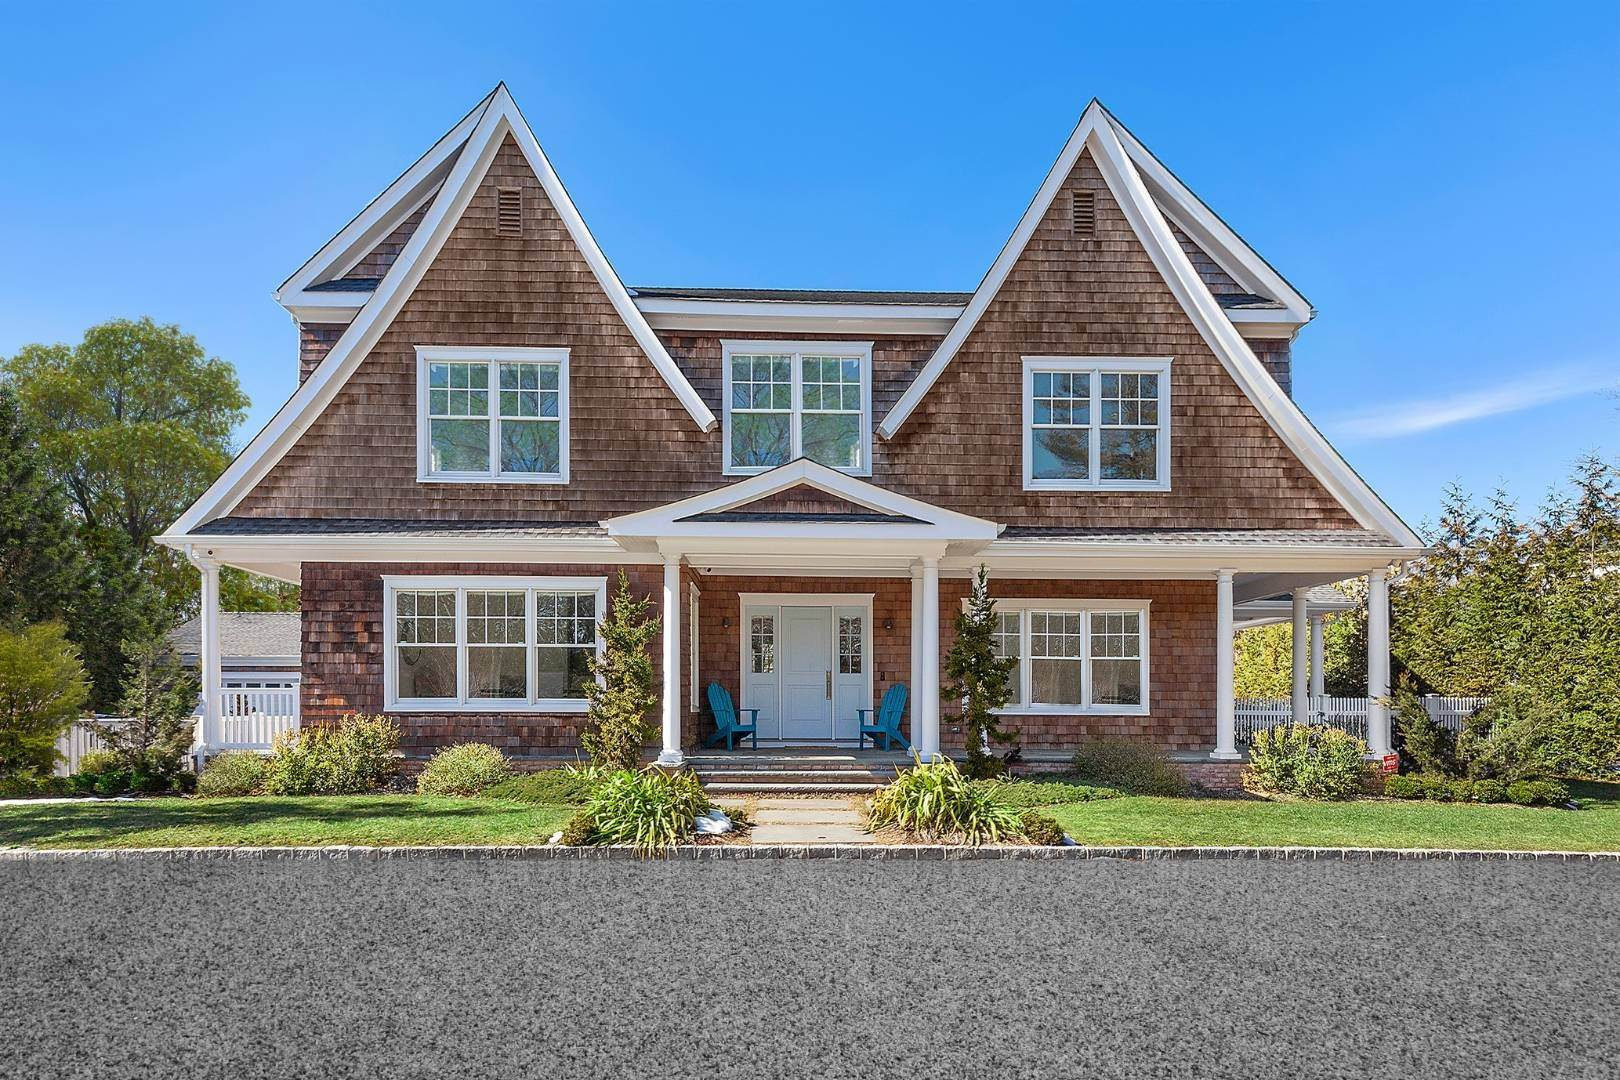 Single Family Home for Sale at The Ultimate Hampton Smart Home 35a Sea Breeze Avenue, Westhampton, NY 11977